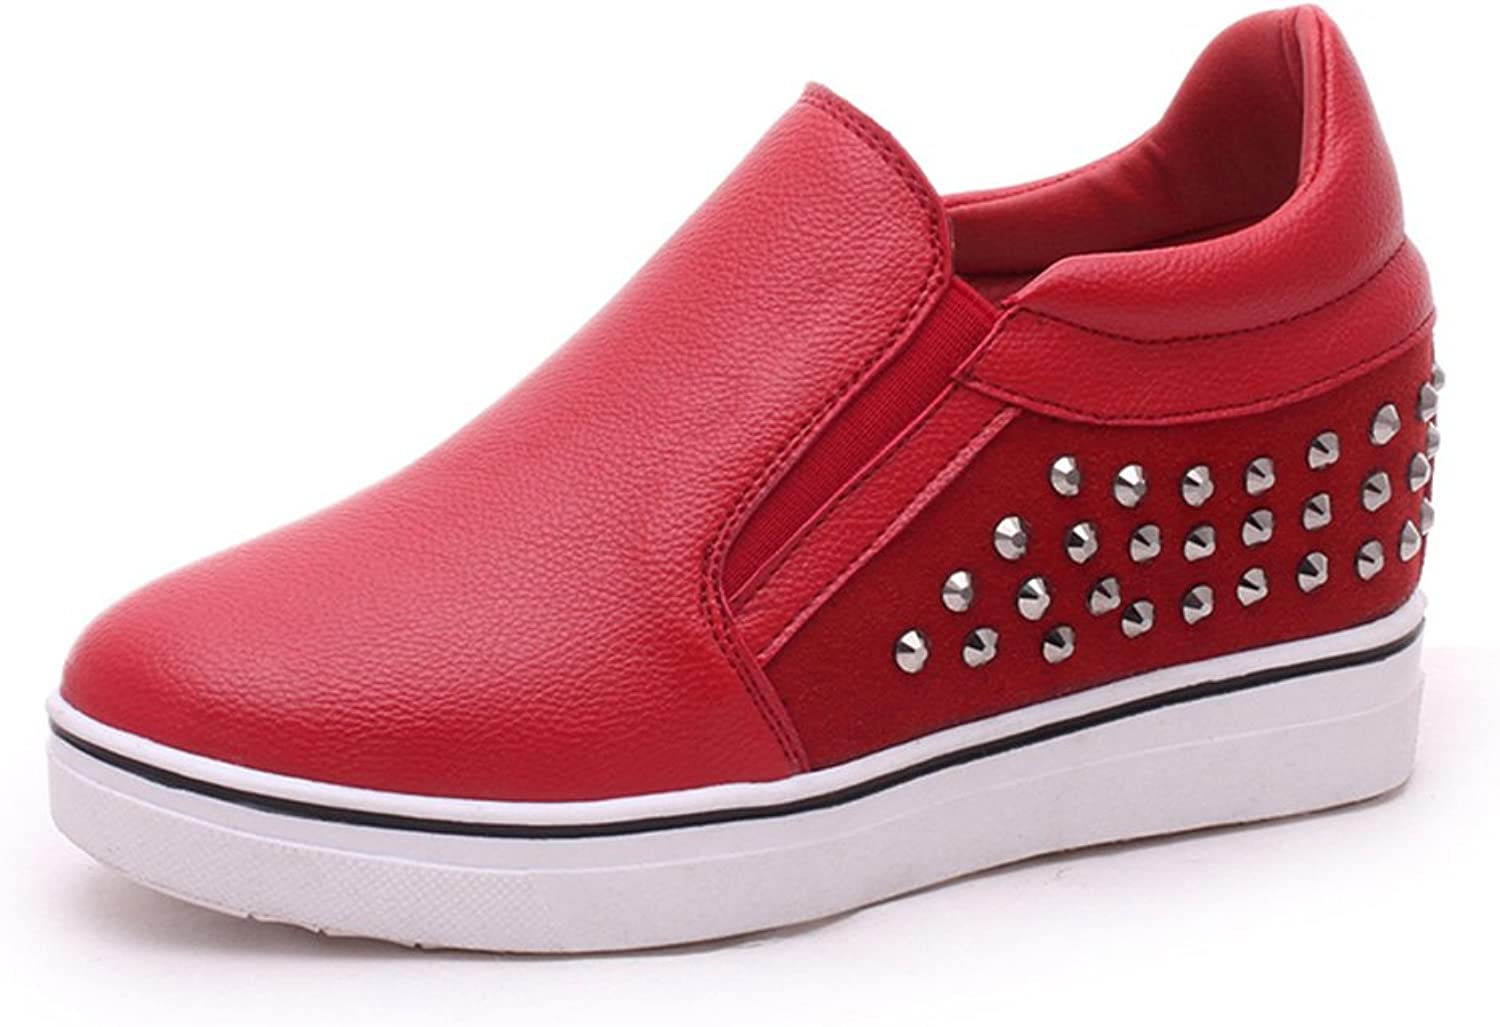 Huhuj Spring Rivets Thick Soled shoes Increased with Round Head Low Casual shoes